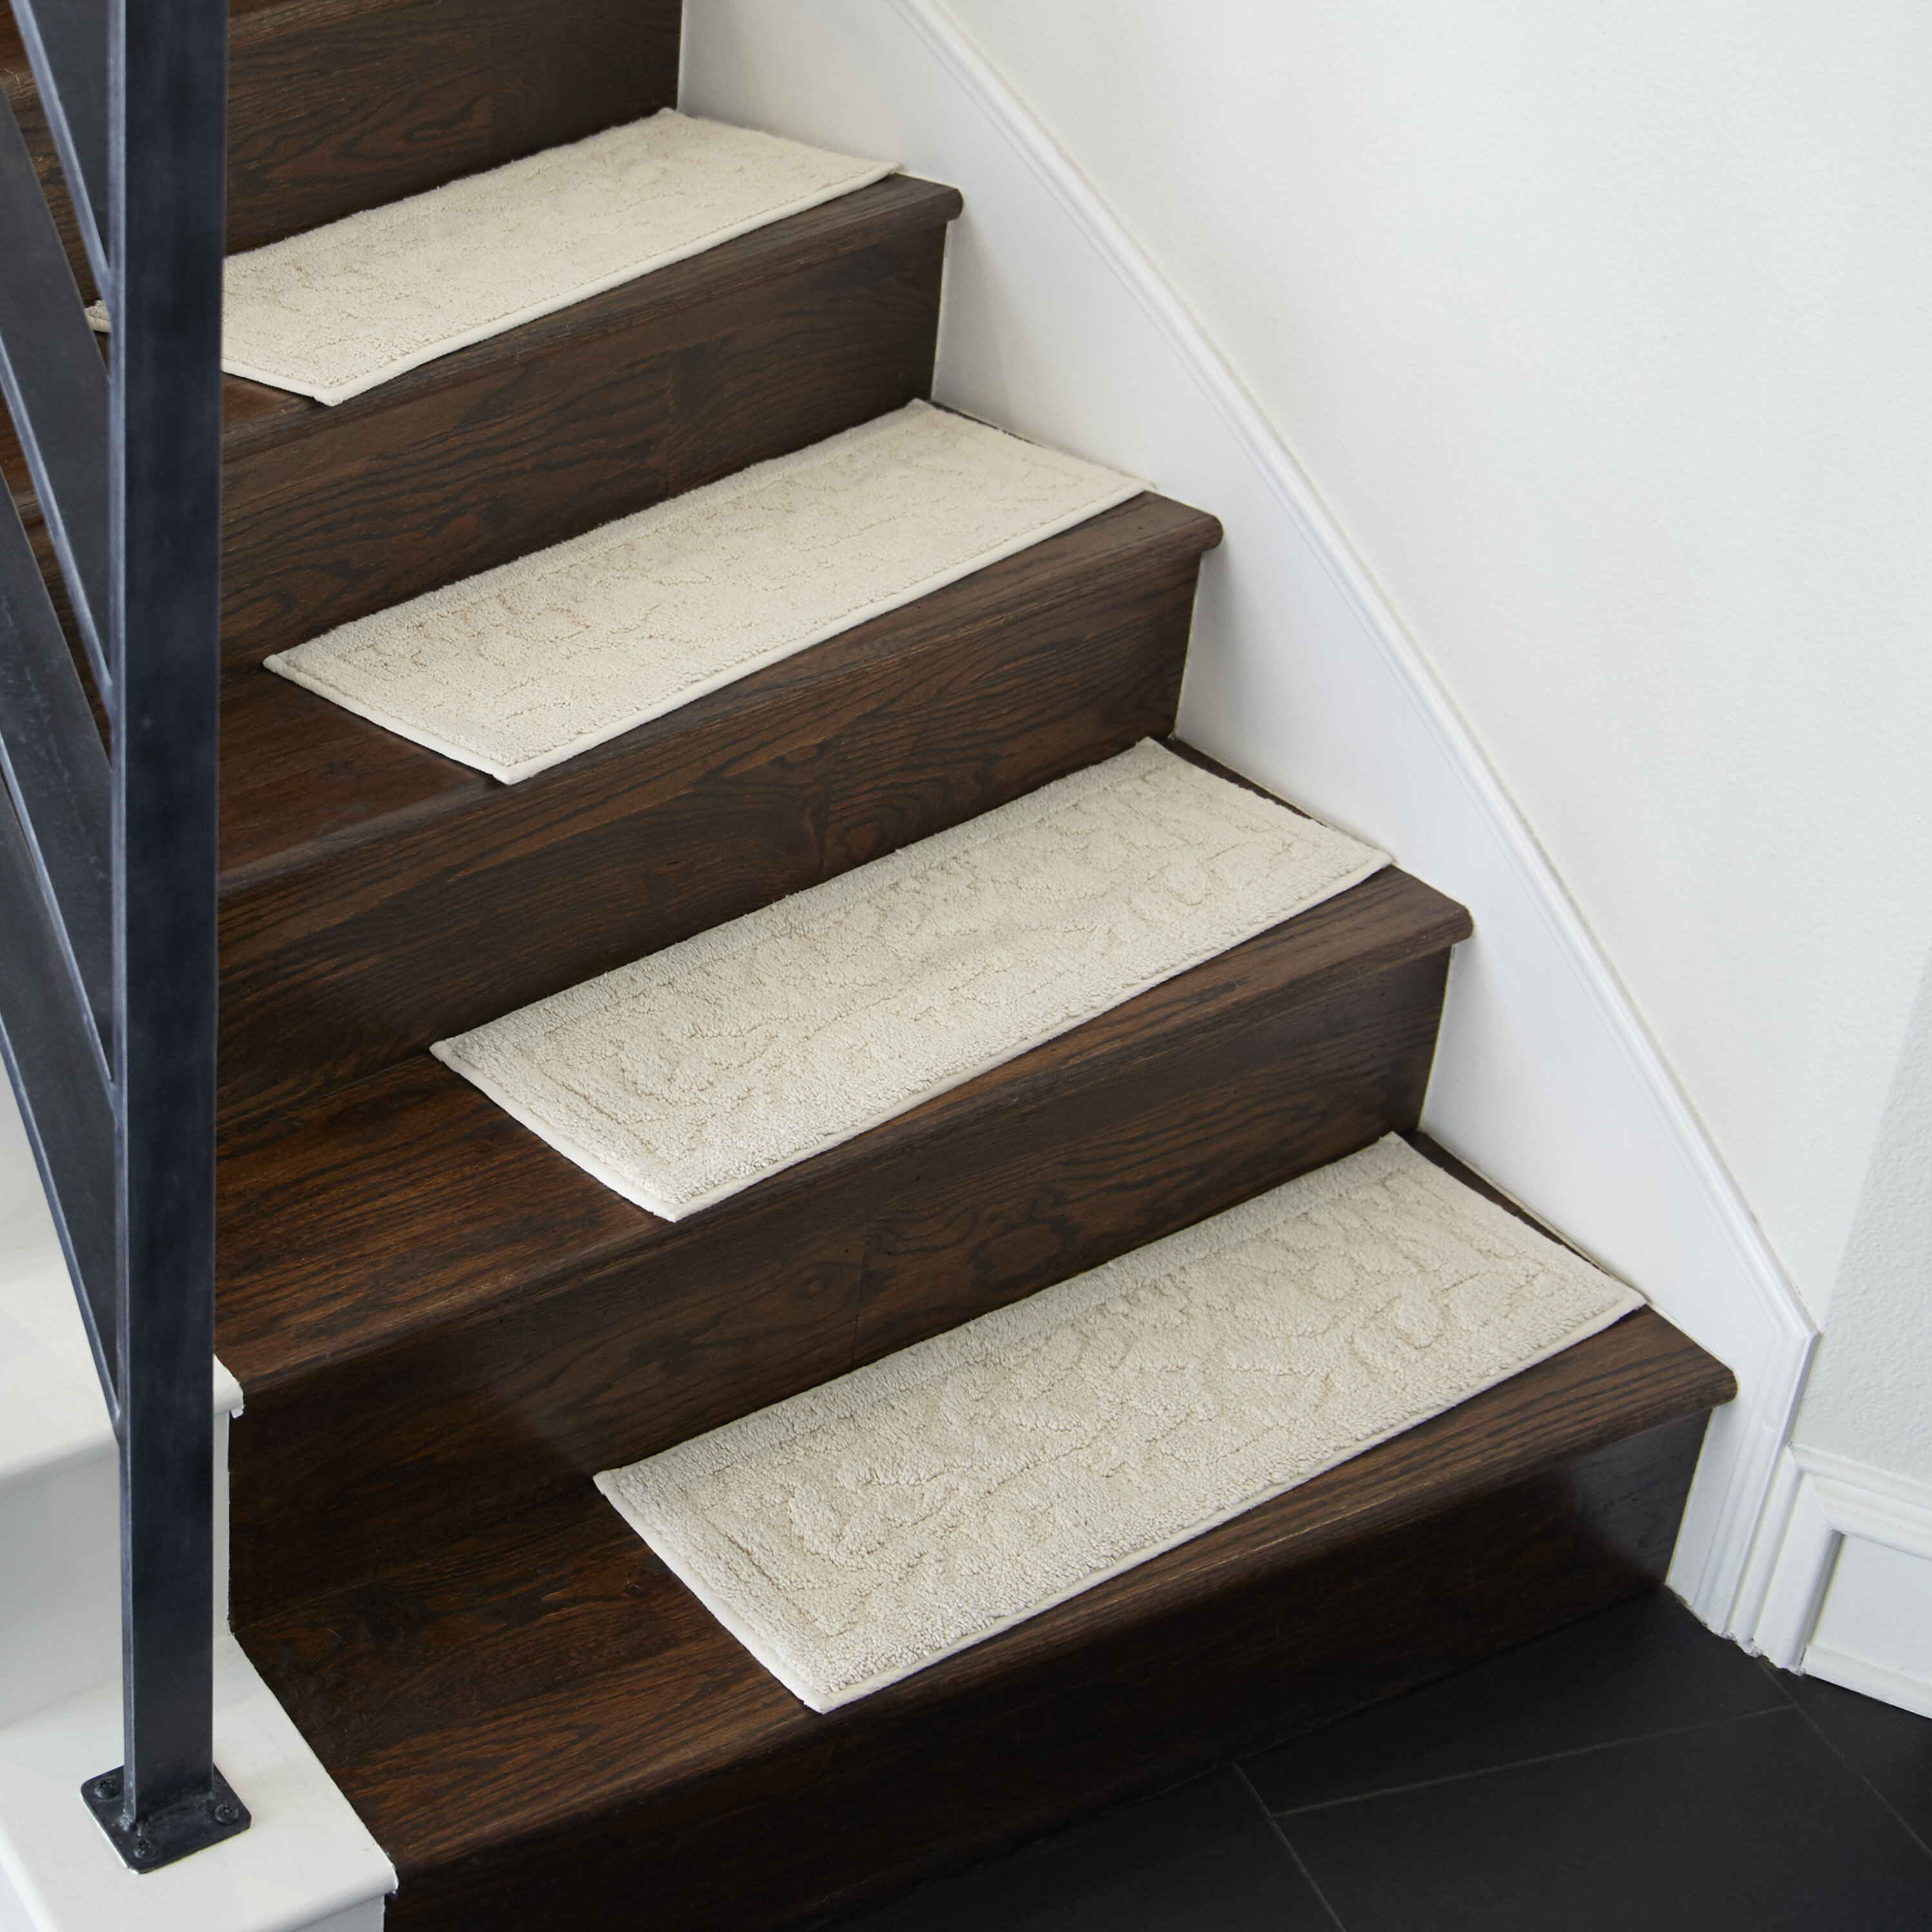 Darby Home Co Jeanette Accent Rug Natural White Stair Tread